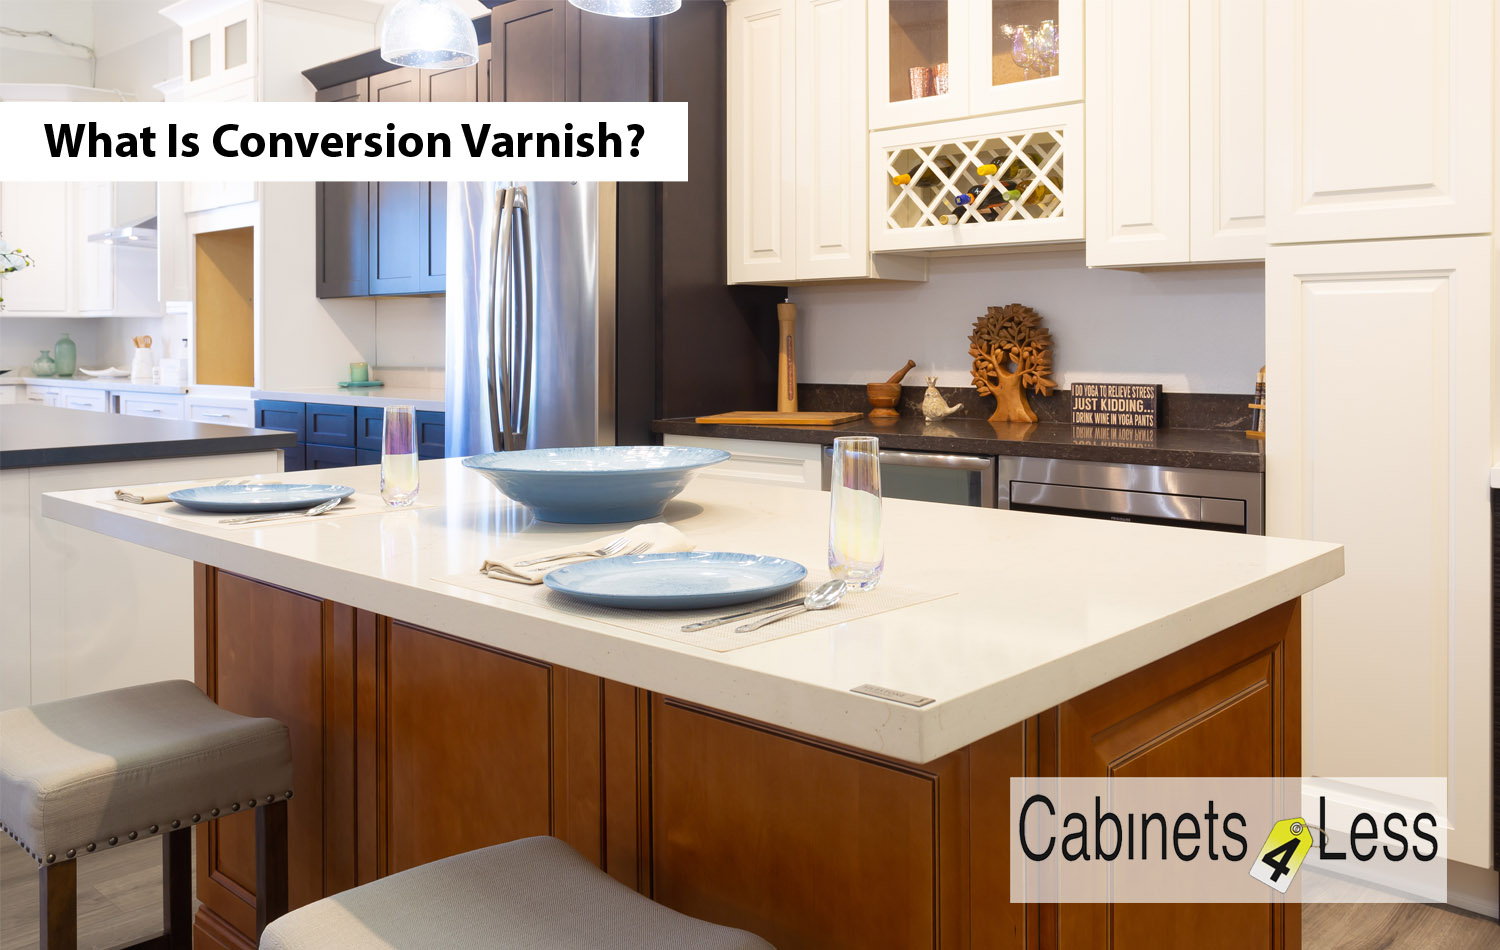 What Is Conversion Varnish